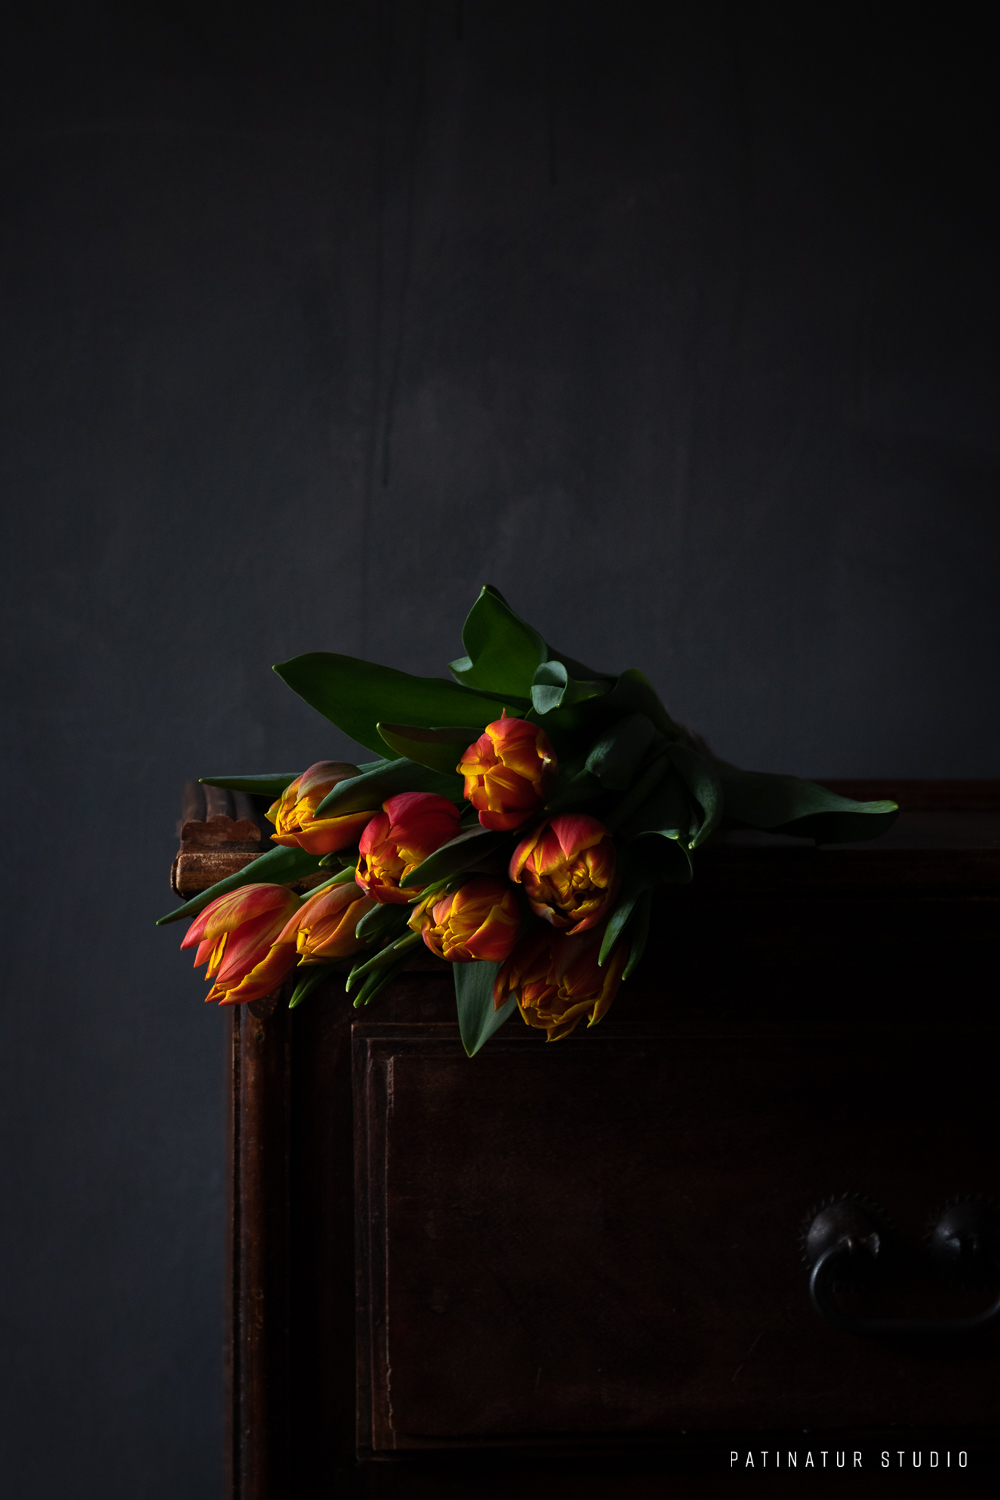 Photo art | Dark and moody still life with red and yellow tulips